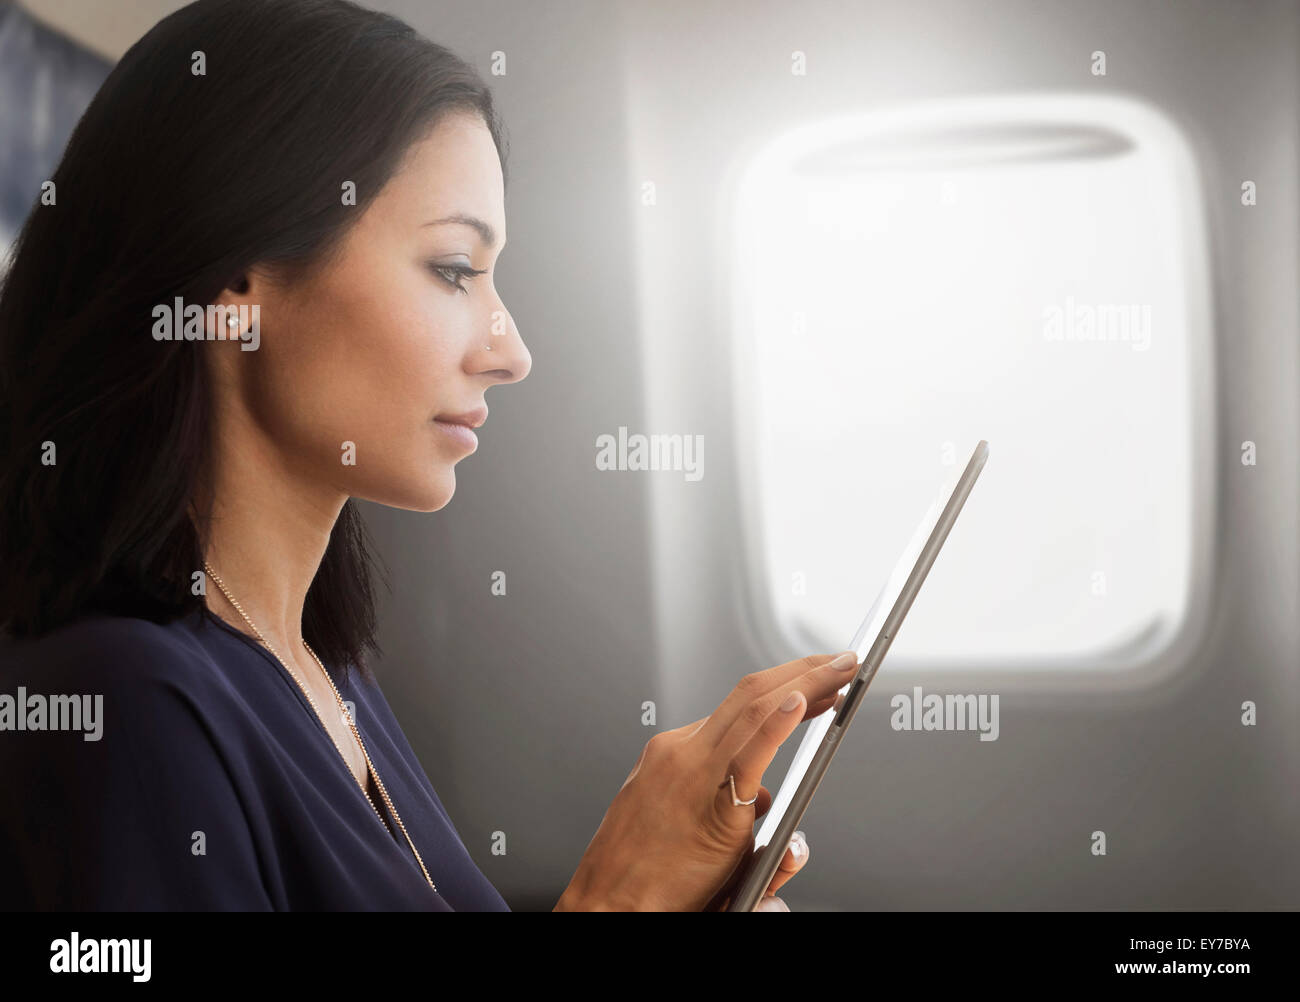 Young woman using tablet on plane Stock Photo